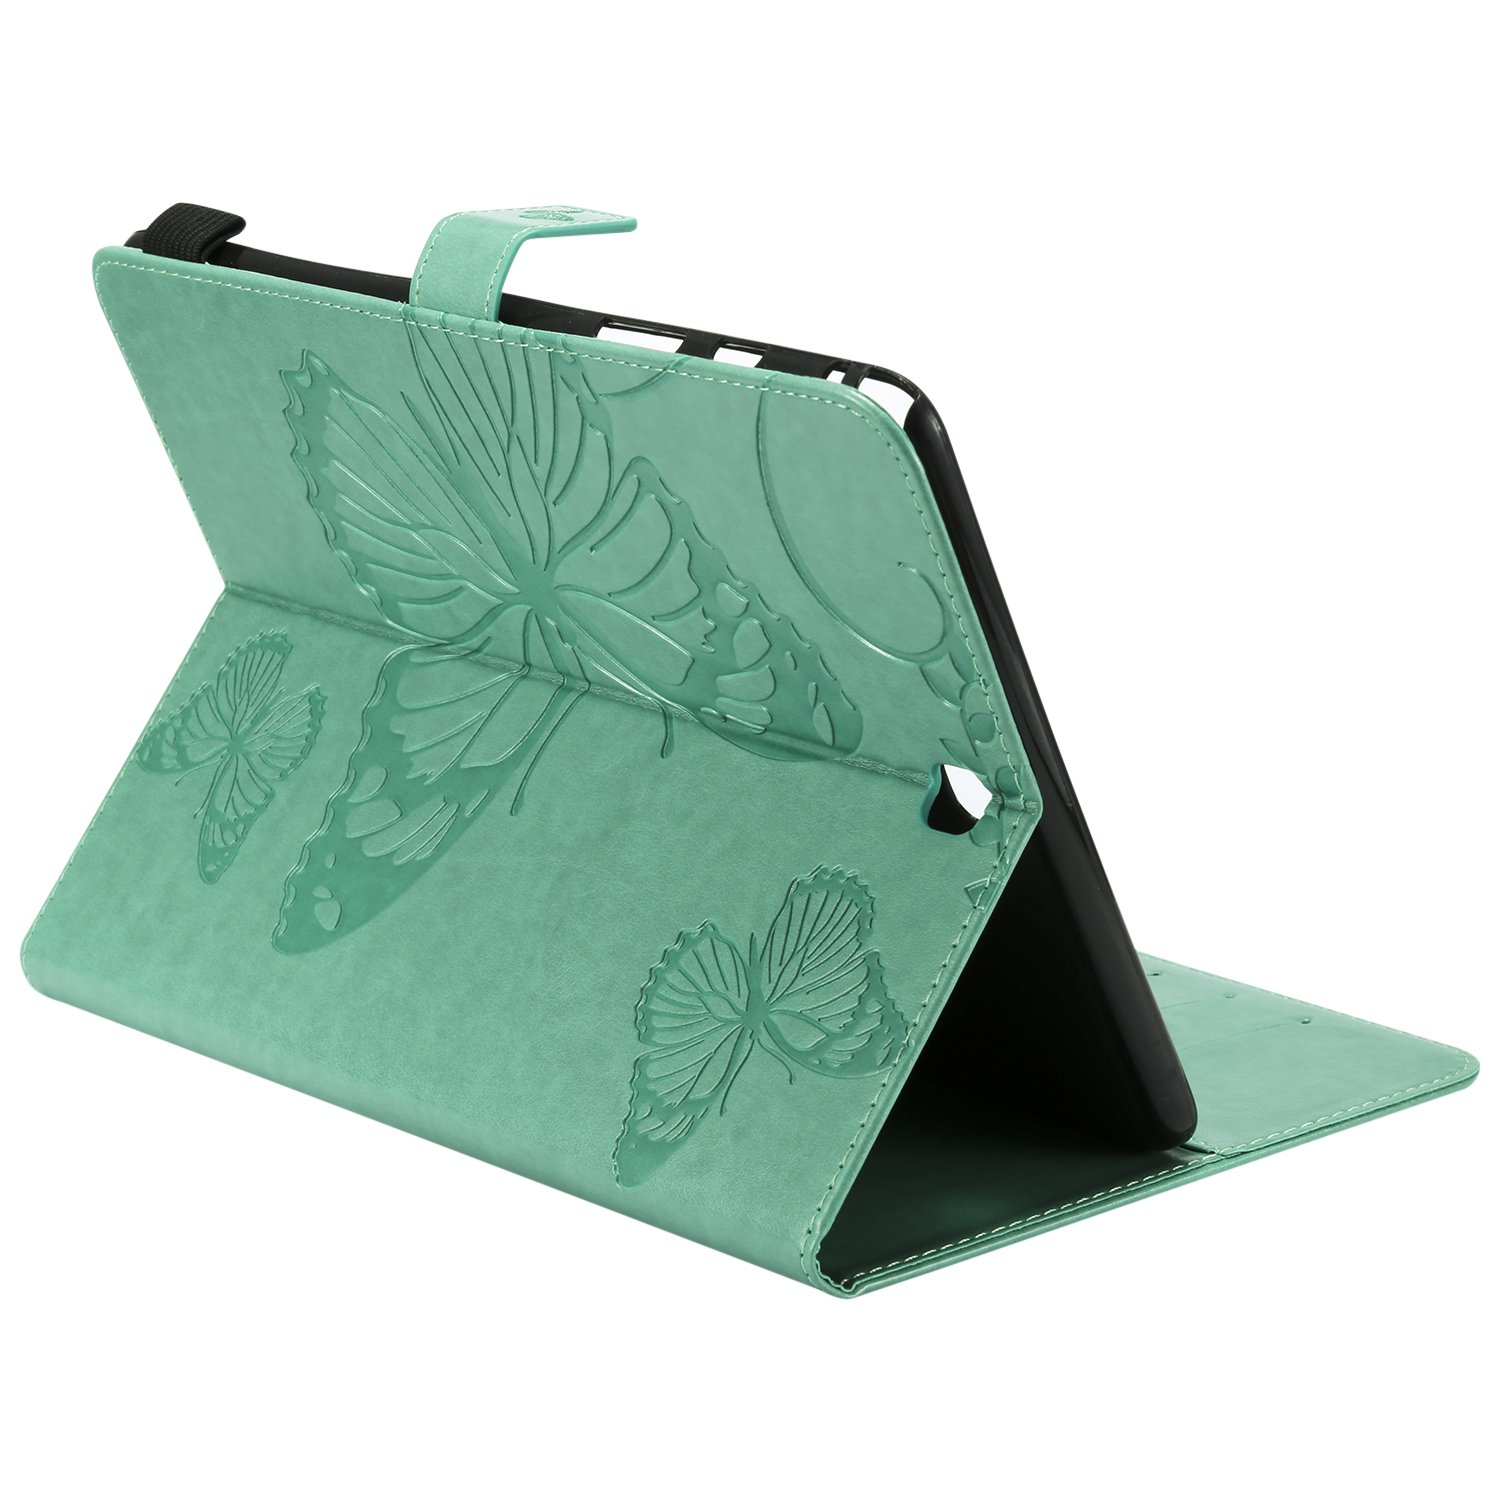 Shinyzone Tablet Leather Case for Samsung Galaxy Tab A 9.7 T550,Embossed Green Butterfly Pattern with Credit Card Slots and Pencil Holder,Auto Sleep and Wake Function Magnetic Flip Stand Cover by ShinyZone (Image #5)